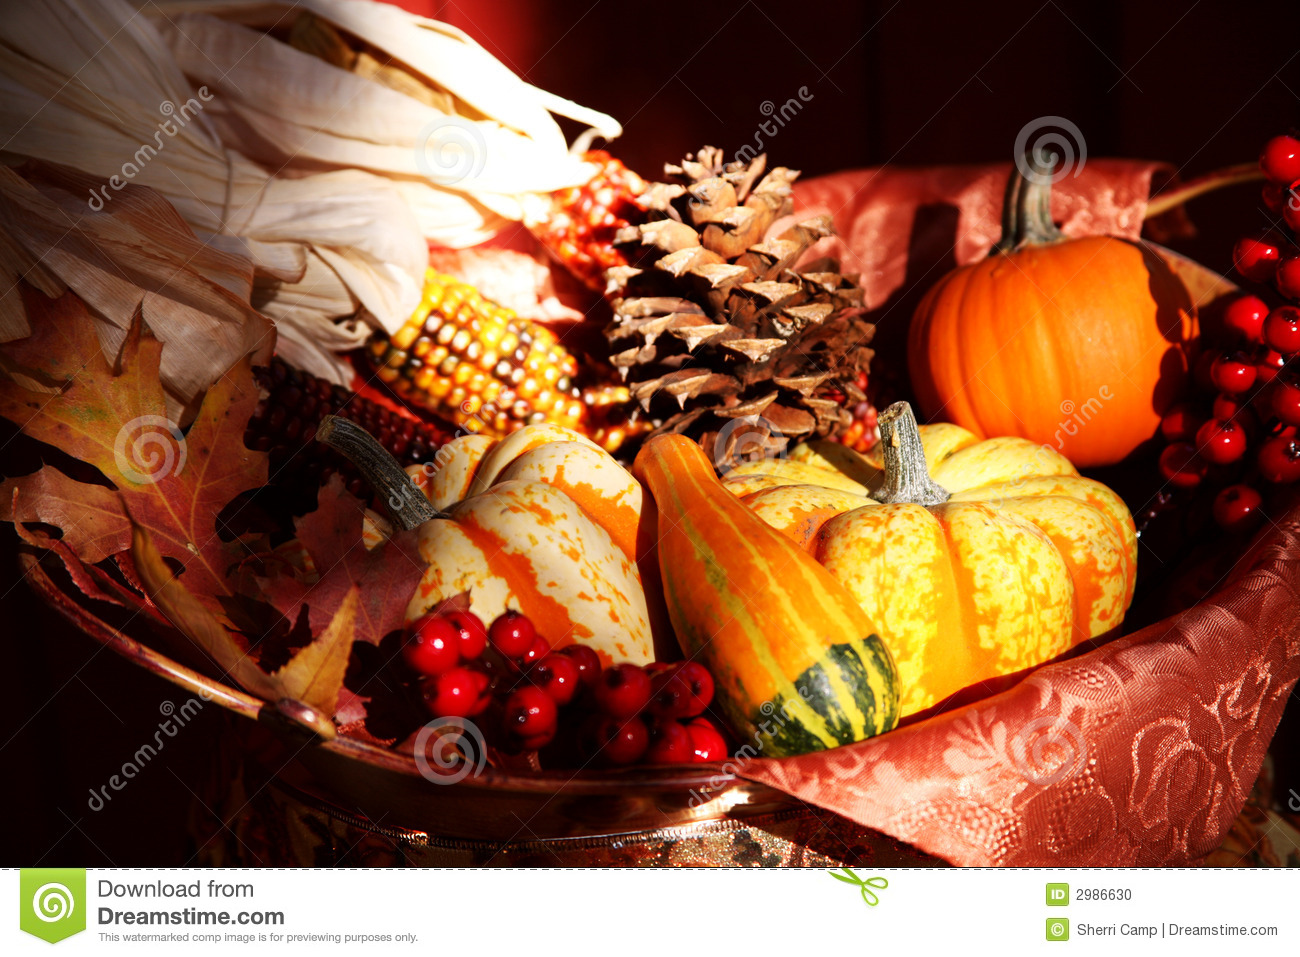 Wallpaper For Thanksgiving And Fall Thanksgiving Fall Harvest Stock Photo Image Of Still